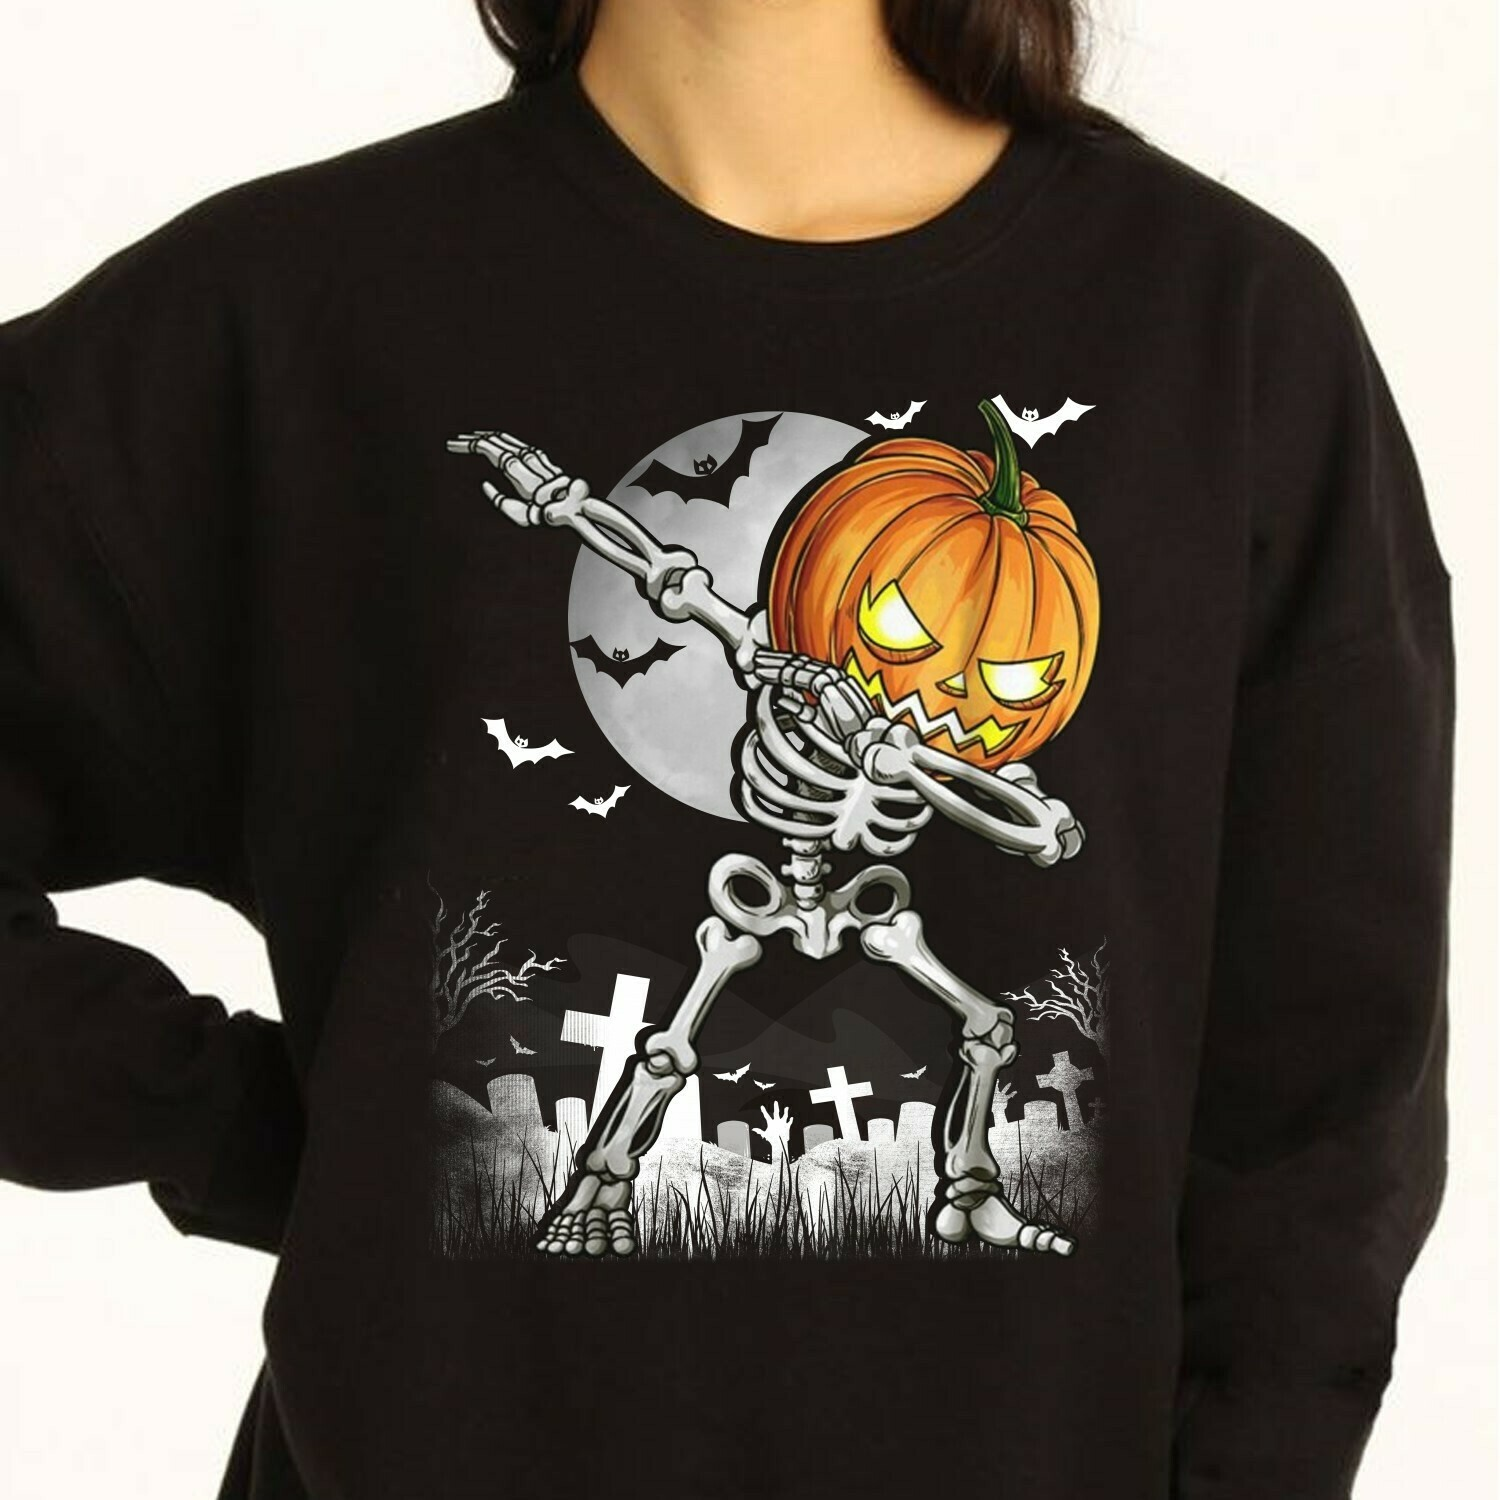 Pumpkin Halloween, Skeleton Skull Not So Scary Halloween Horror Costume,Ghost Bat Family Vacation Gifts T-Shirt Long Sleeve Sweatshirt Hoodie Jolly Family Gifts